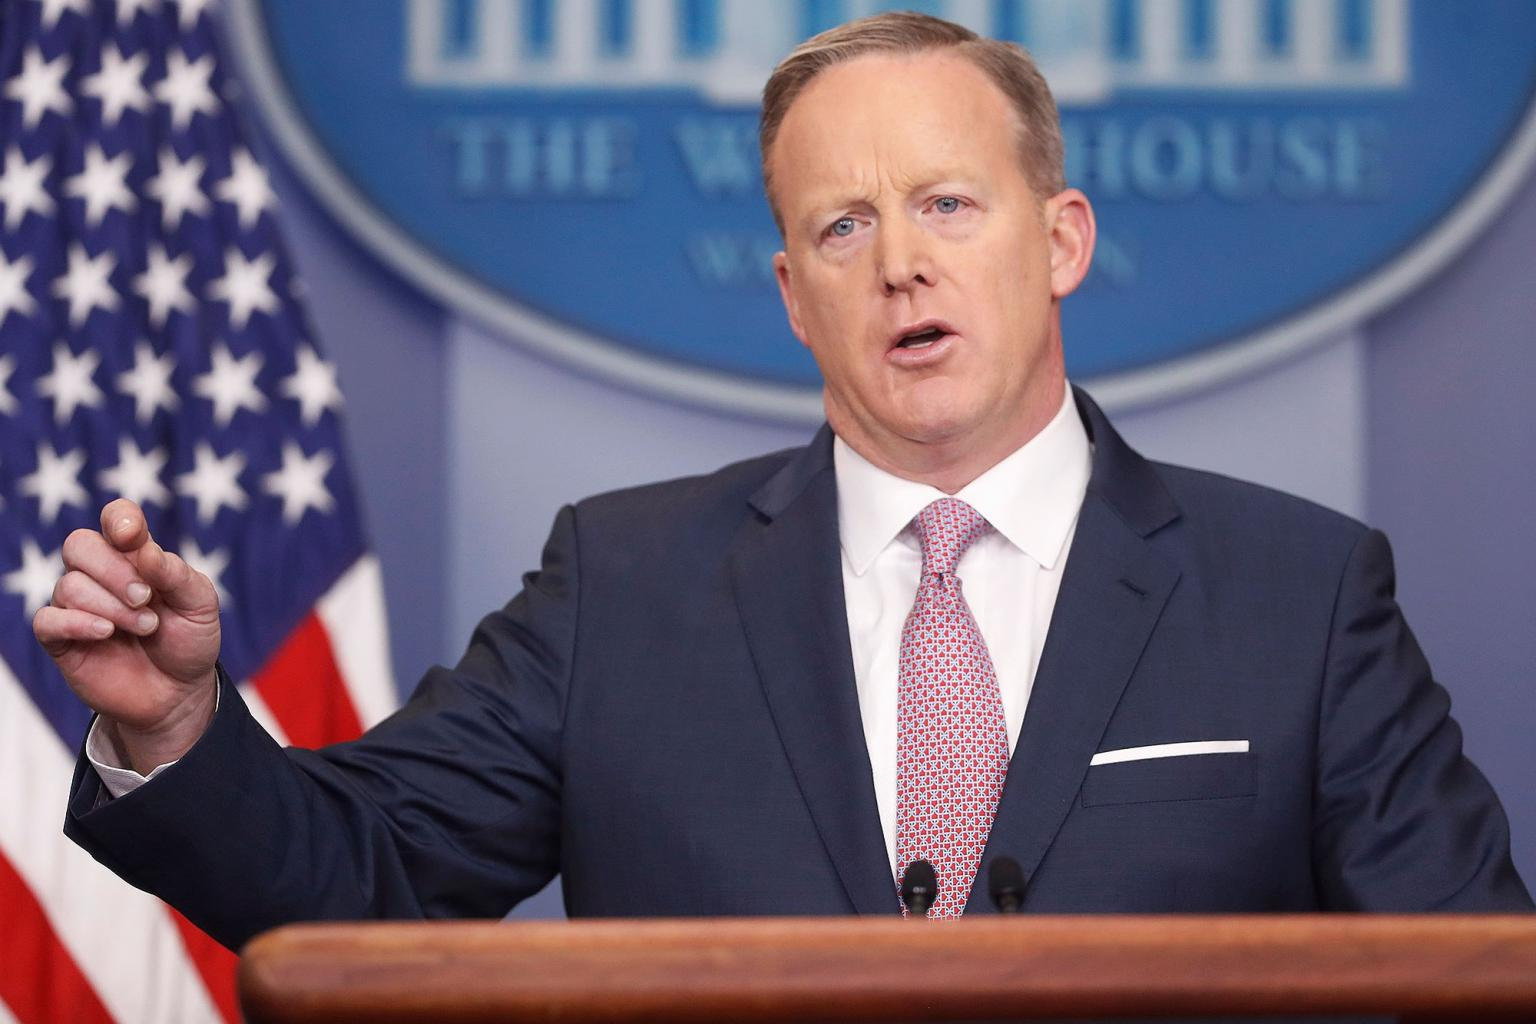 Sean Spicer's Hitler Comments Mashed Up with Veep Closing Credits